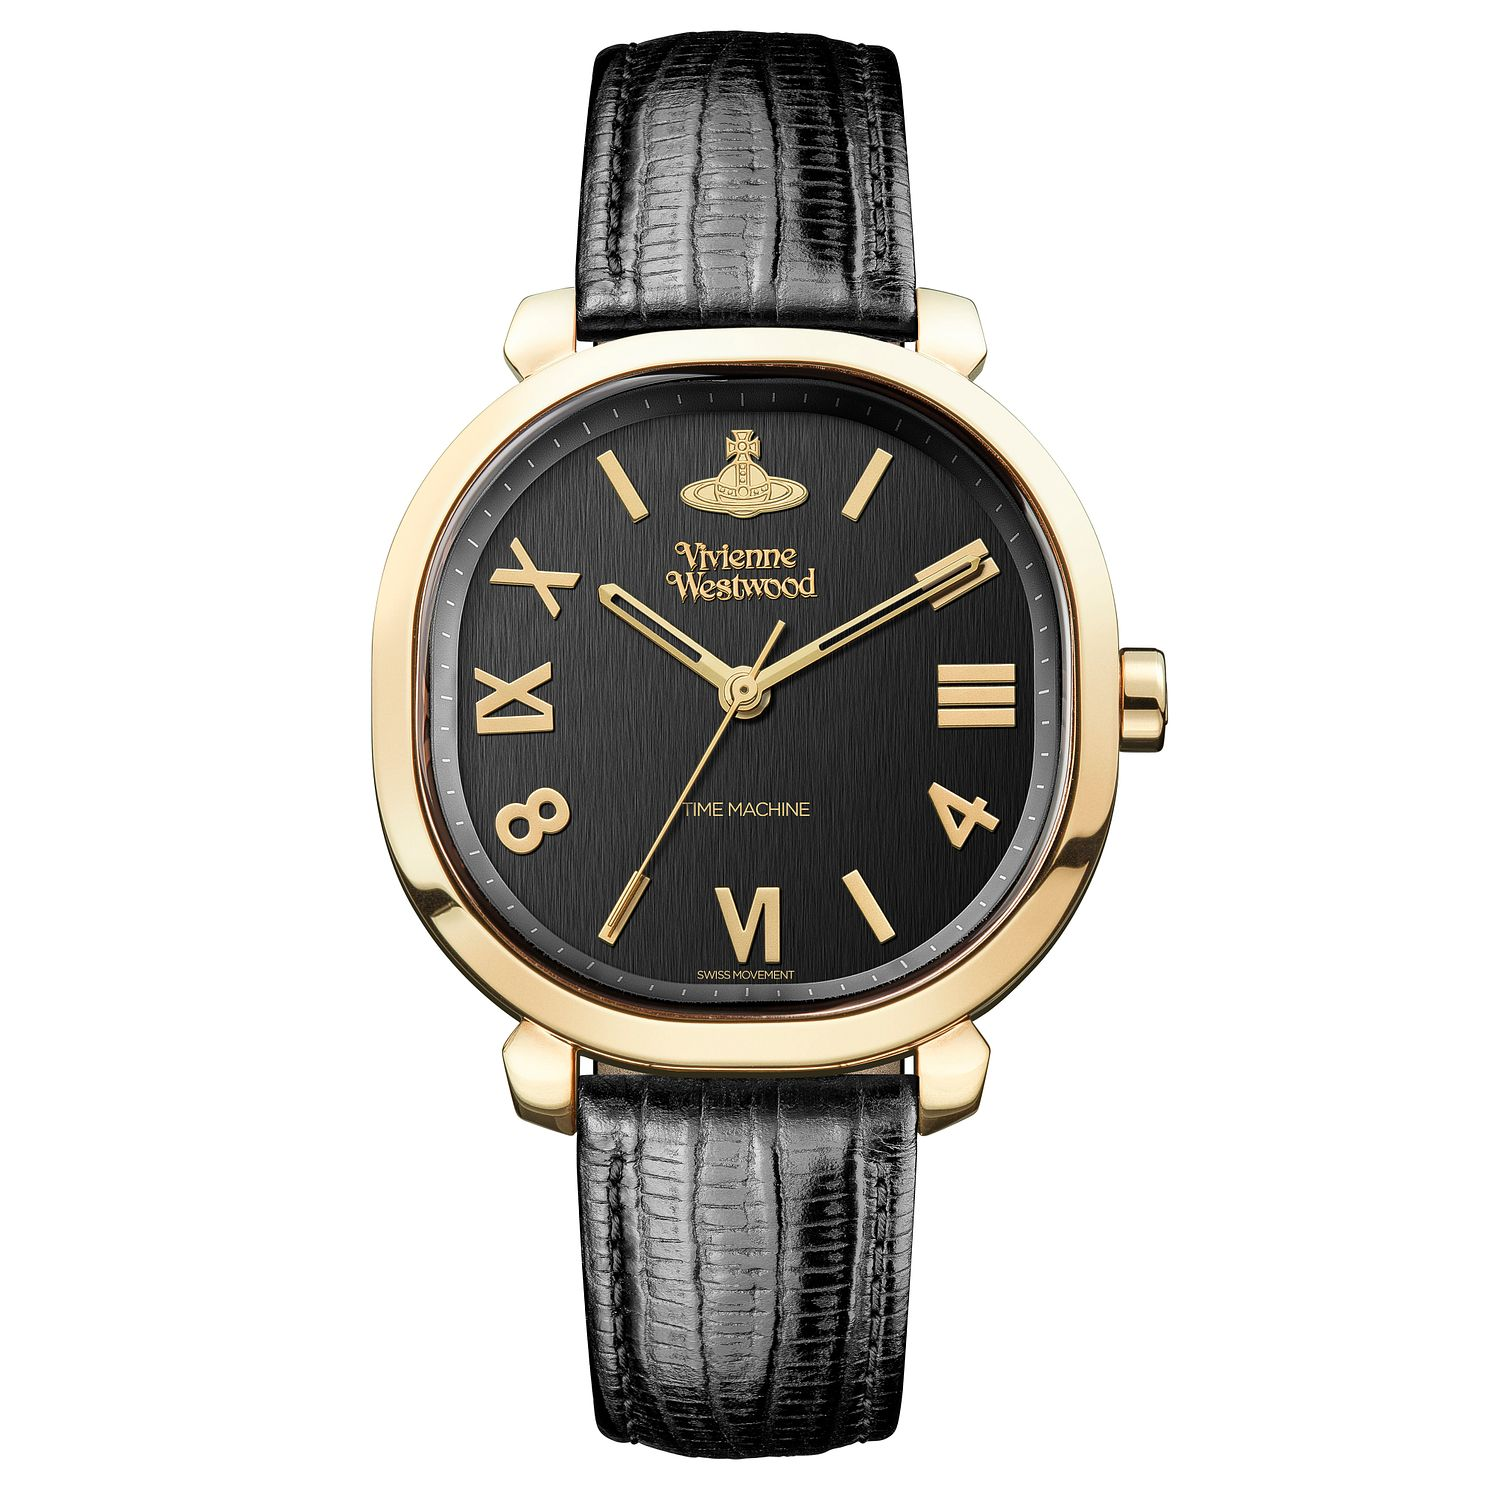 Vivienne Westwood Mayfair Ladies' Black Leather Strap Watch - Product number 4281926